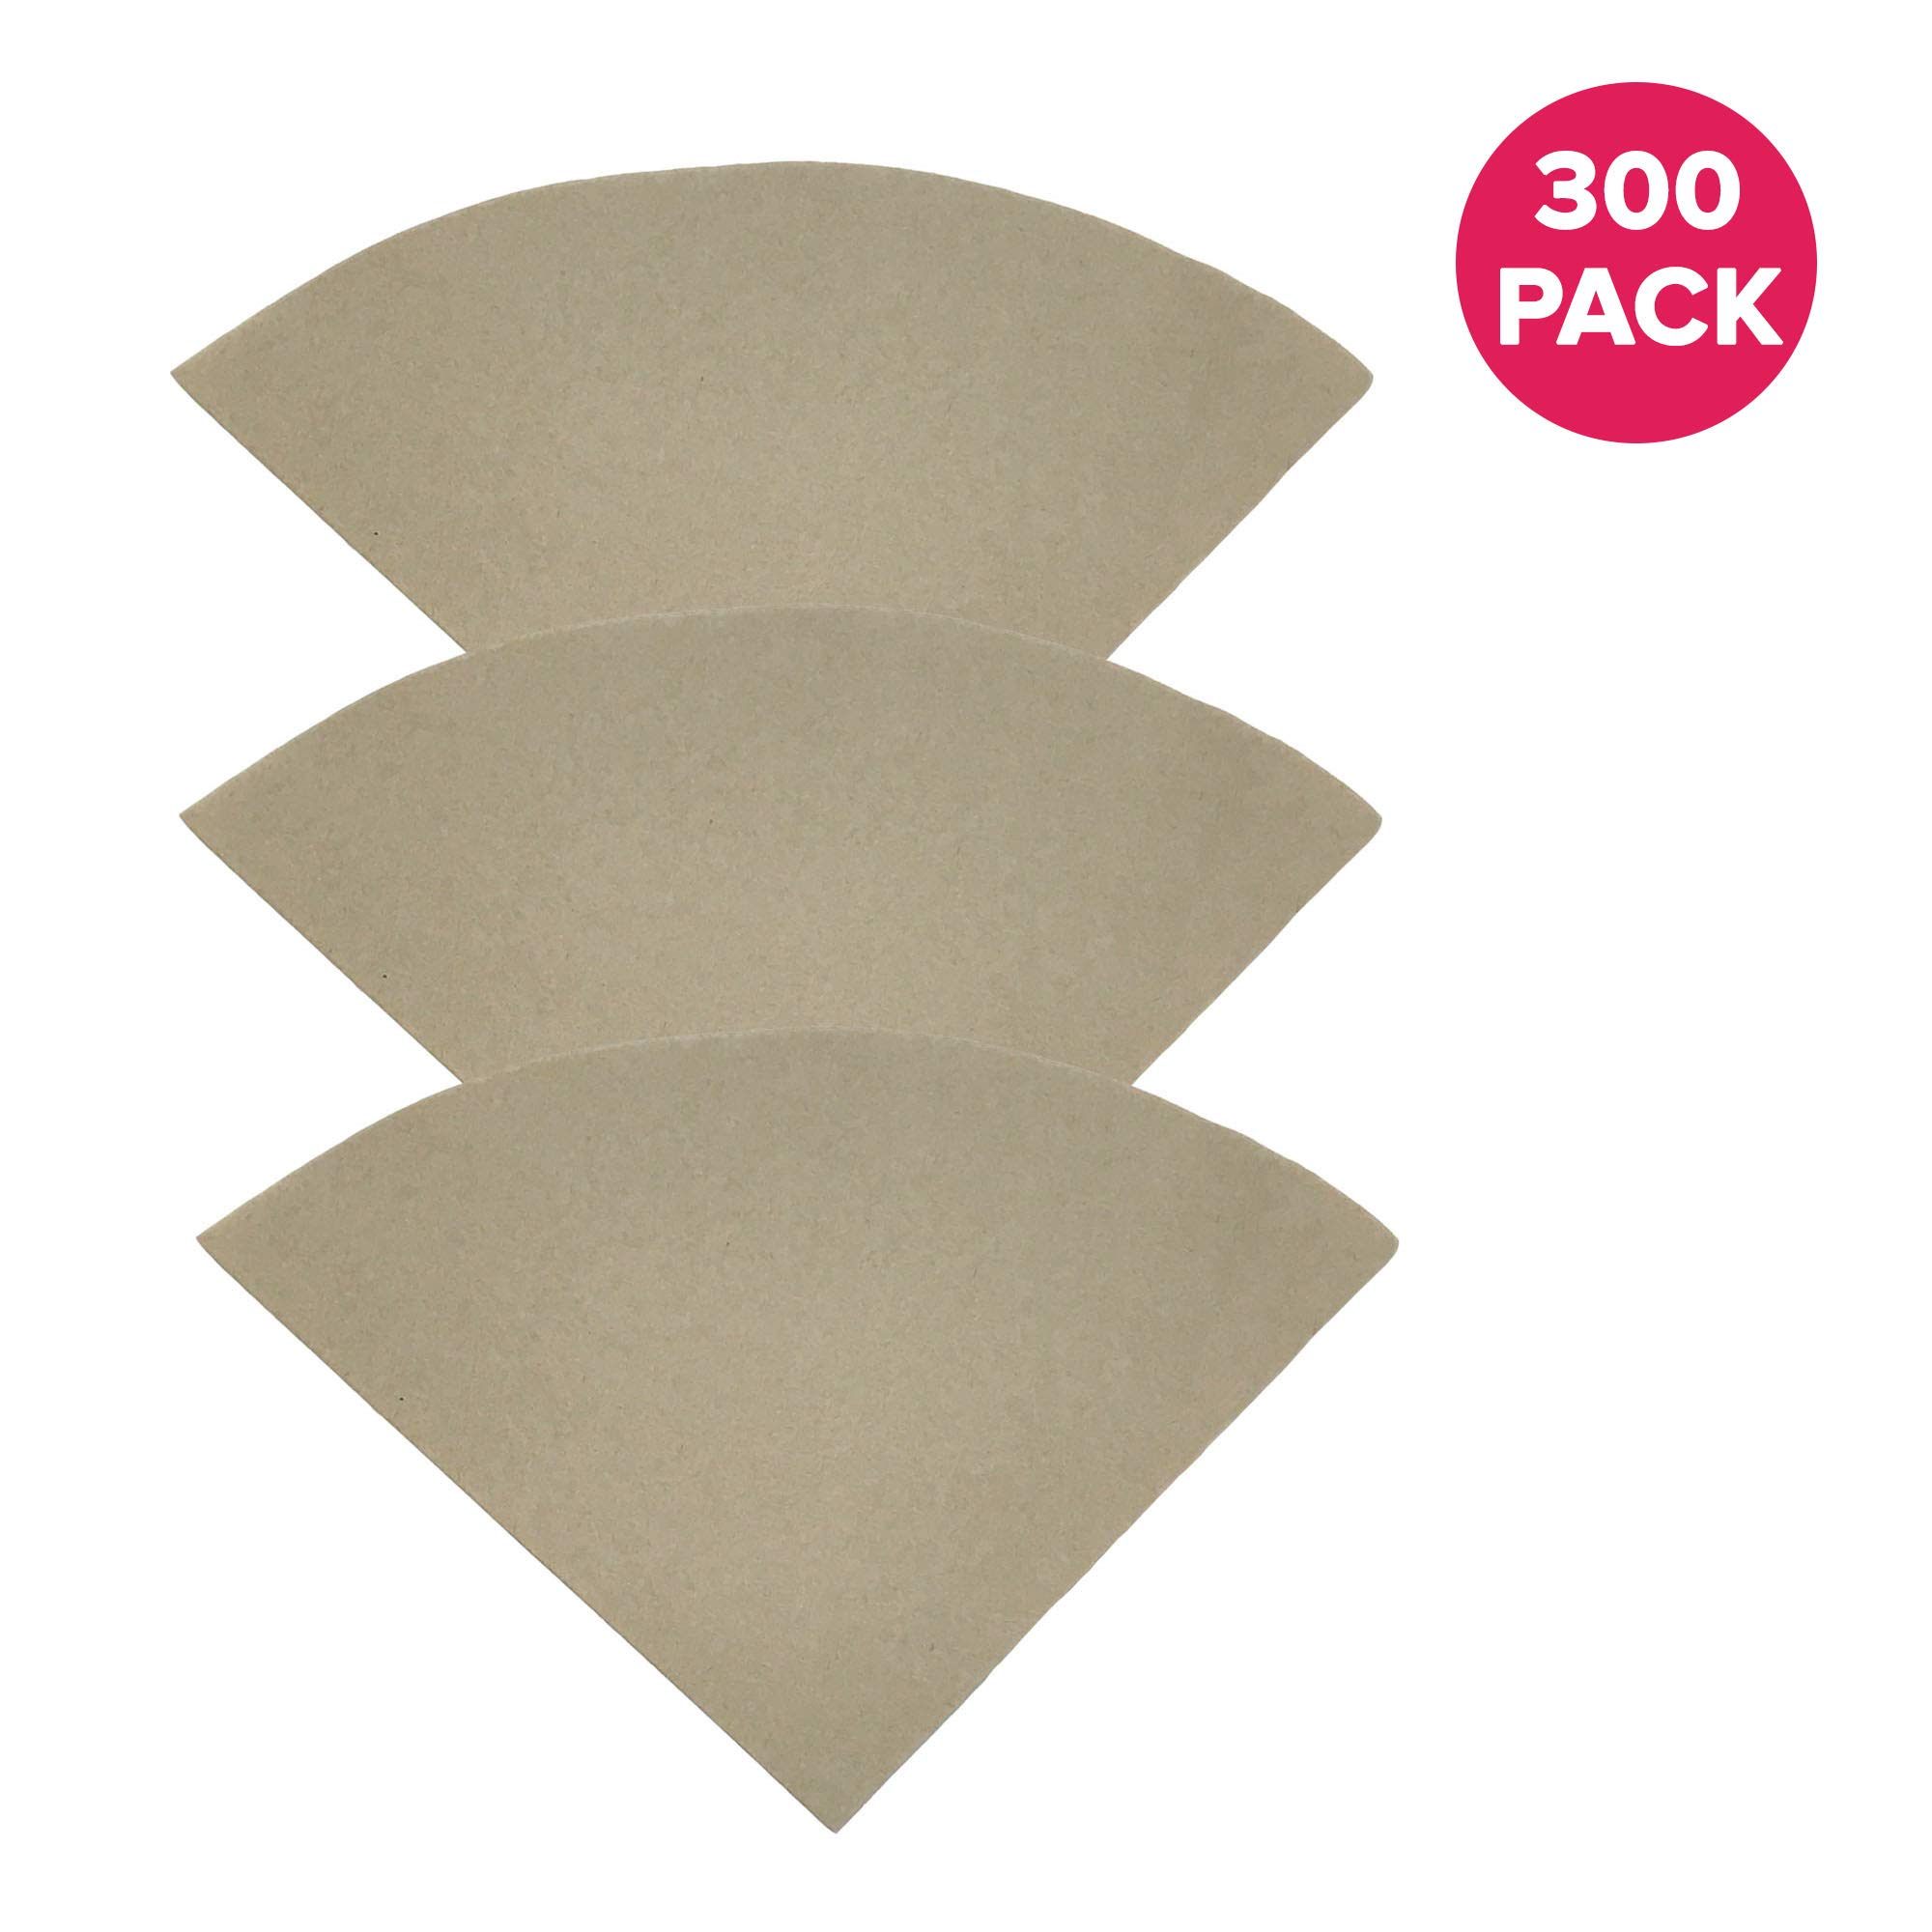 Think Crucial 300PK Compatible Replacement Unbleached Paper Coffee Filters For 6, 8 & 10 Cup Chemex-Brand Coffee Makers